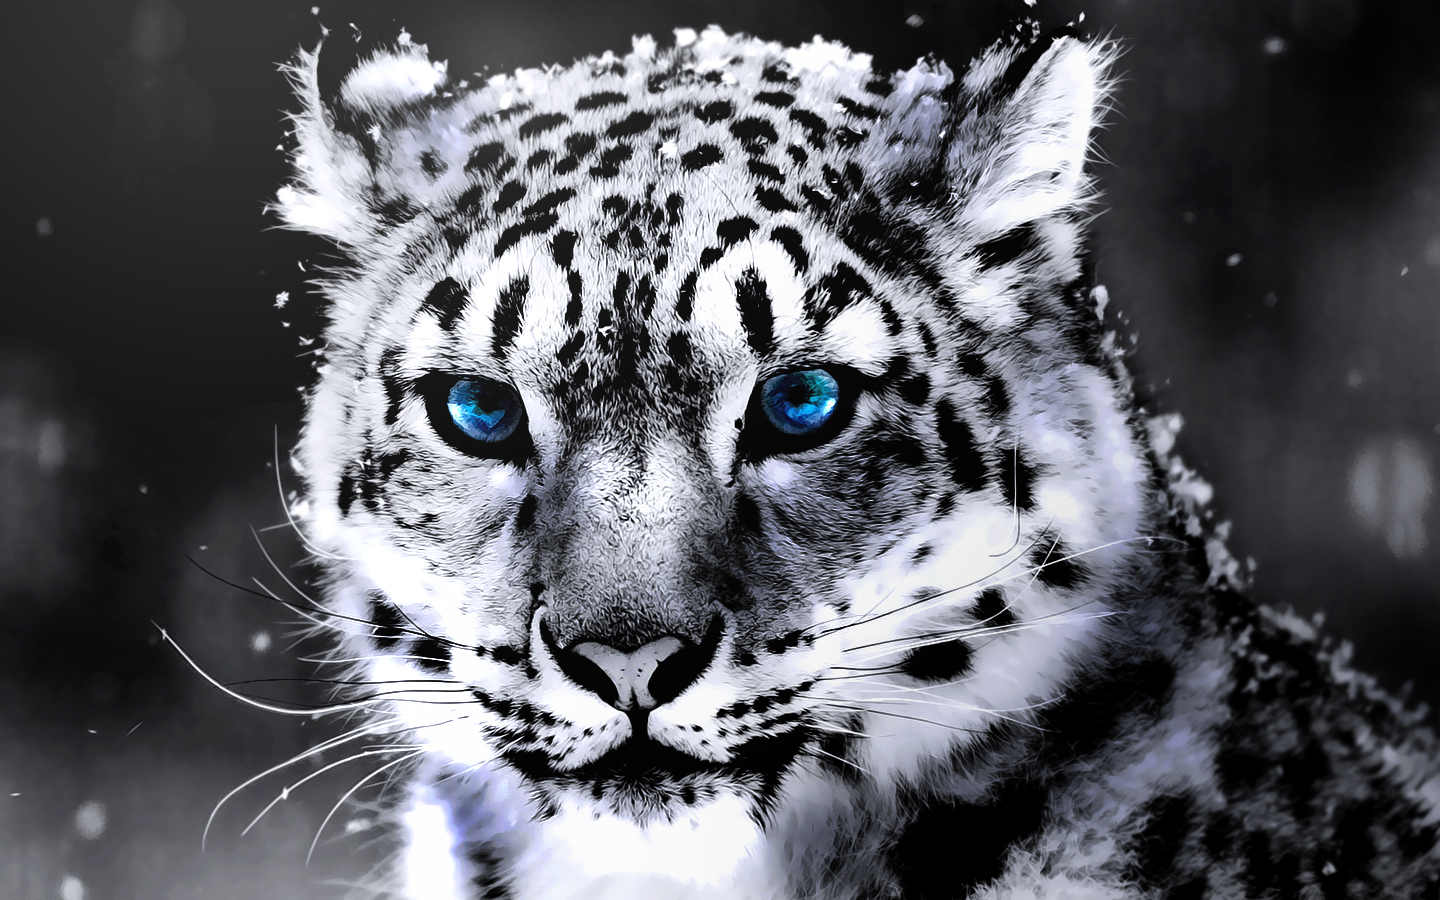 Amazing Wallpaper Marvel White Tiger - Amazing-White-Tiger-Wallpaper-2  You Should Have_25218.jpg